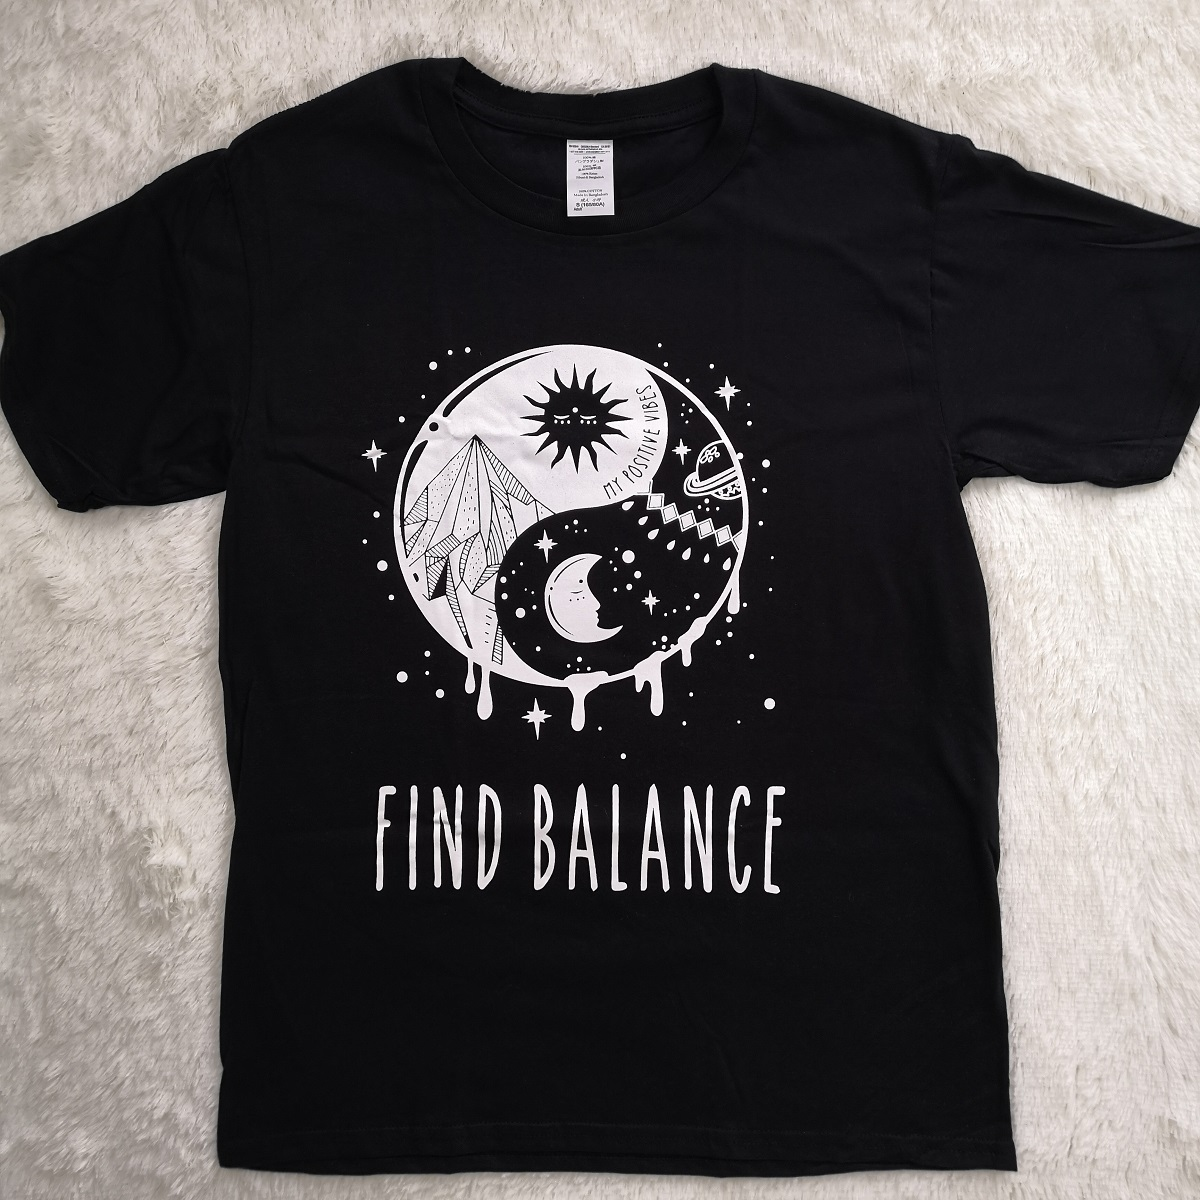 Hillbilly New Arrival Tshirt Printed Find Balance Ladies T Shirt